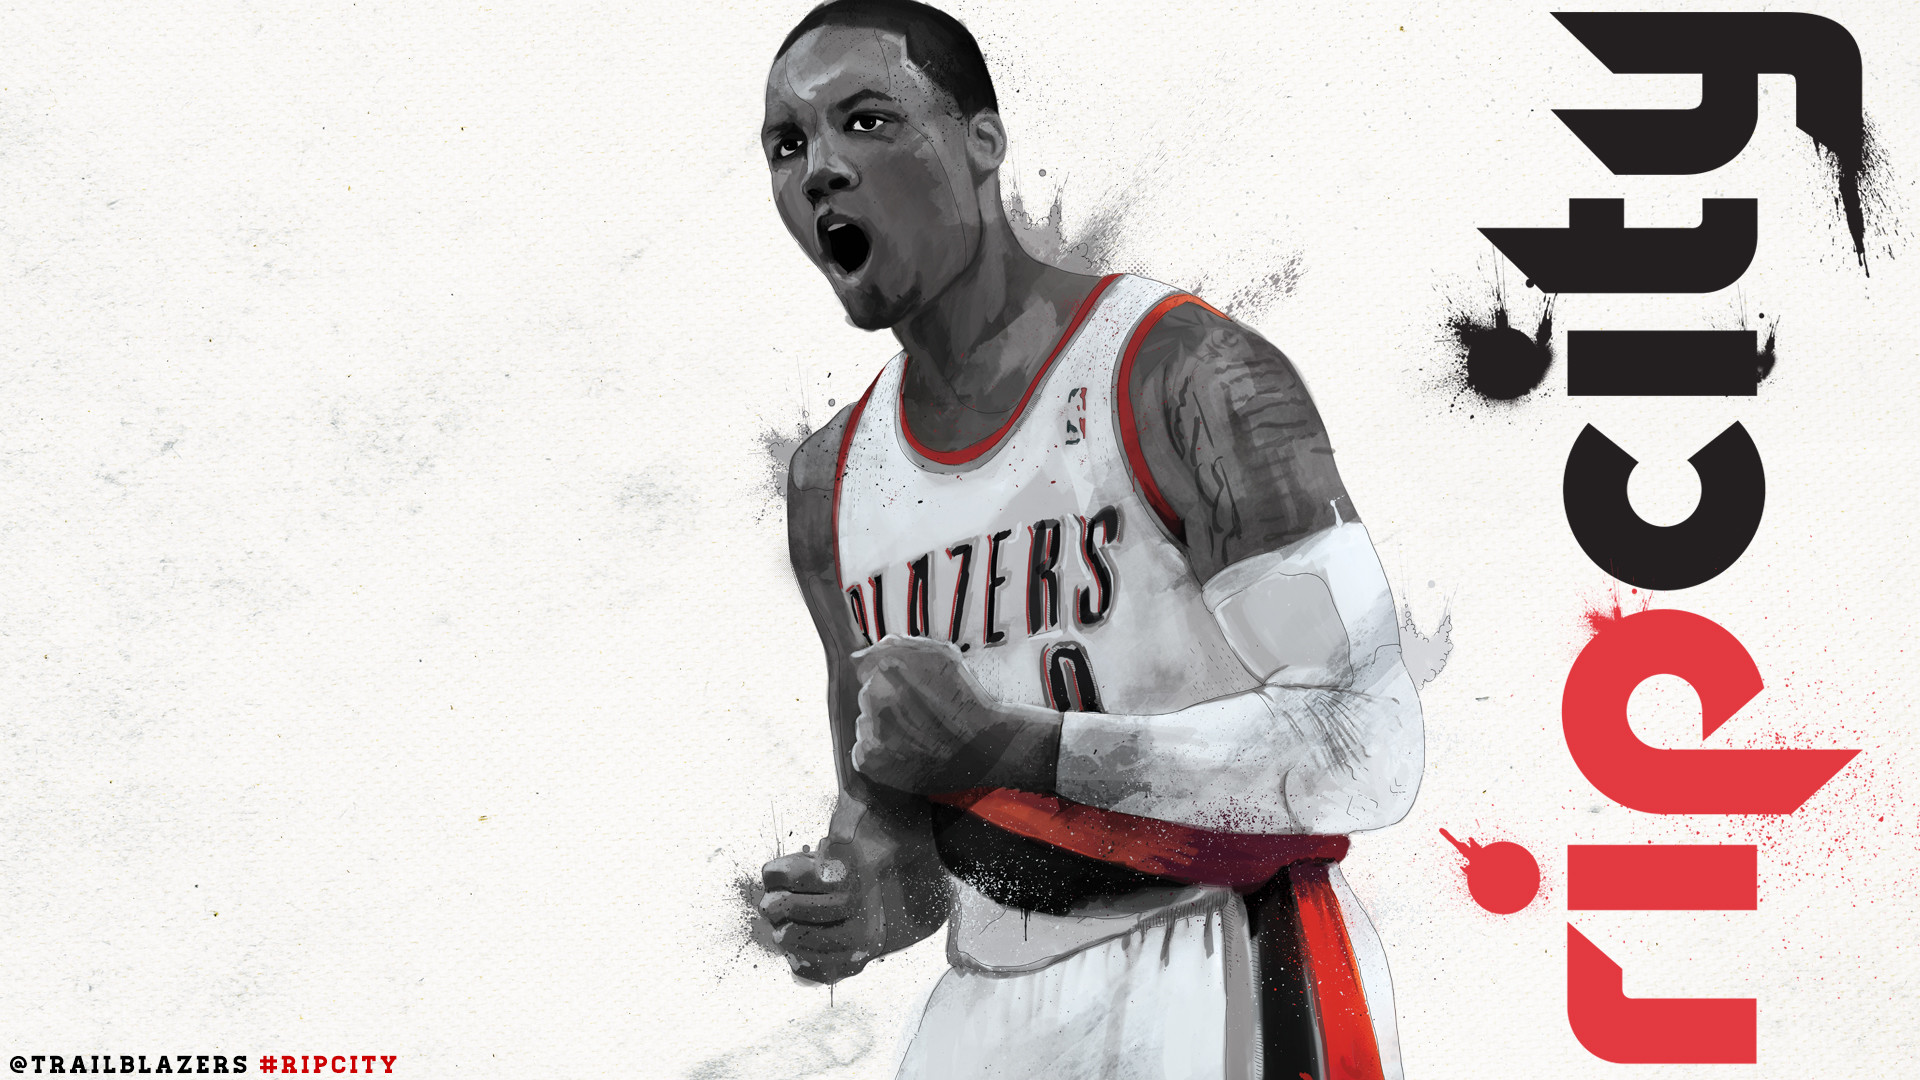 1920x1080 Damian Lillard Iphone Wallpaper Damian lillard